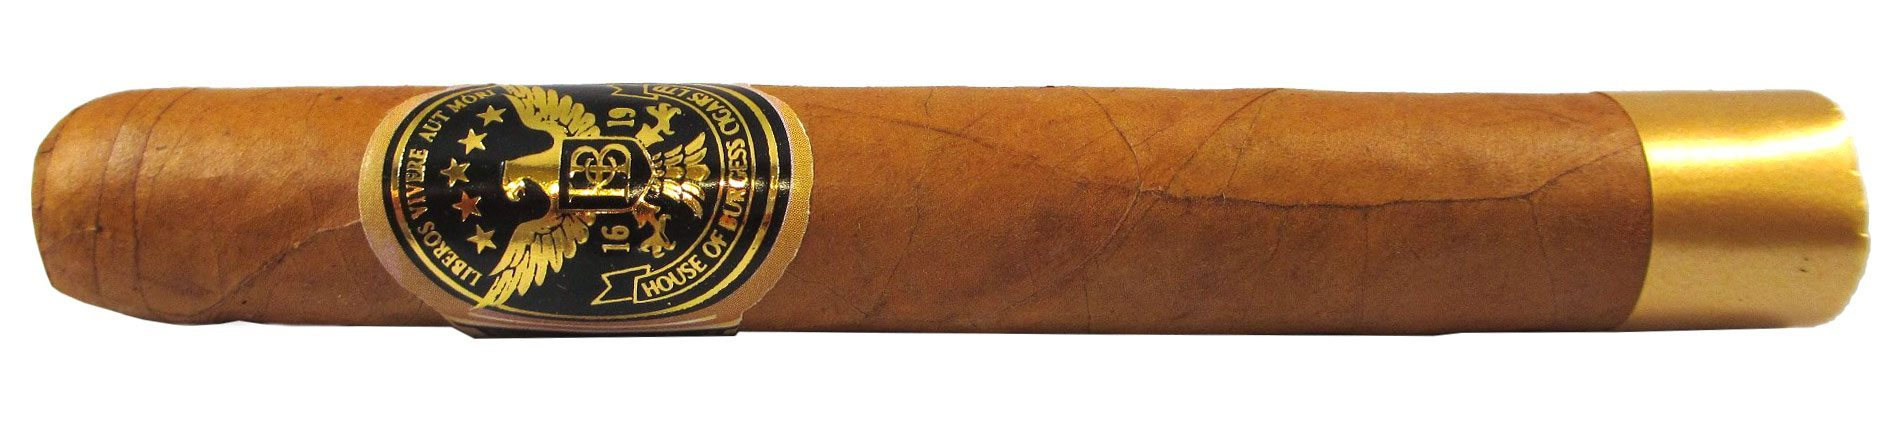 Blind Cigar Review: House of Burgess | Connecticut Toro